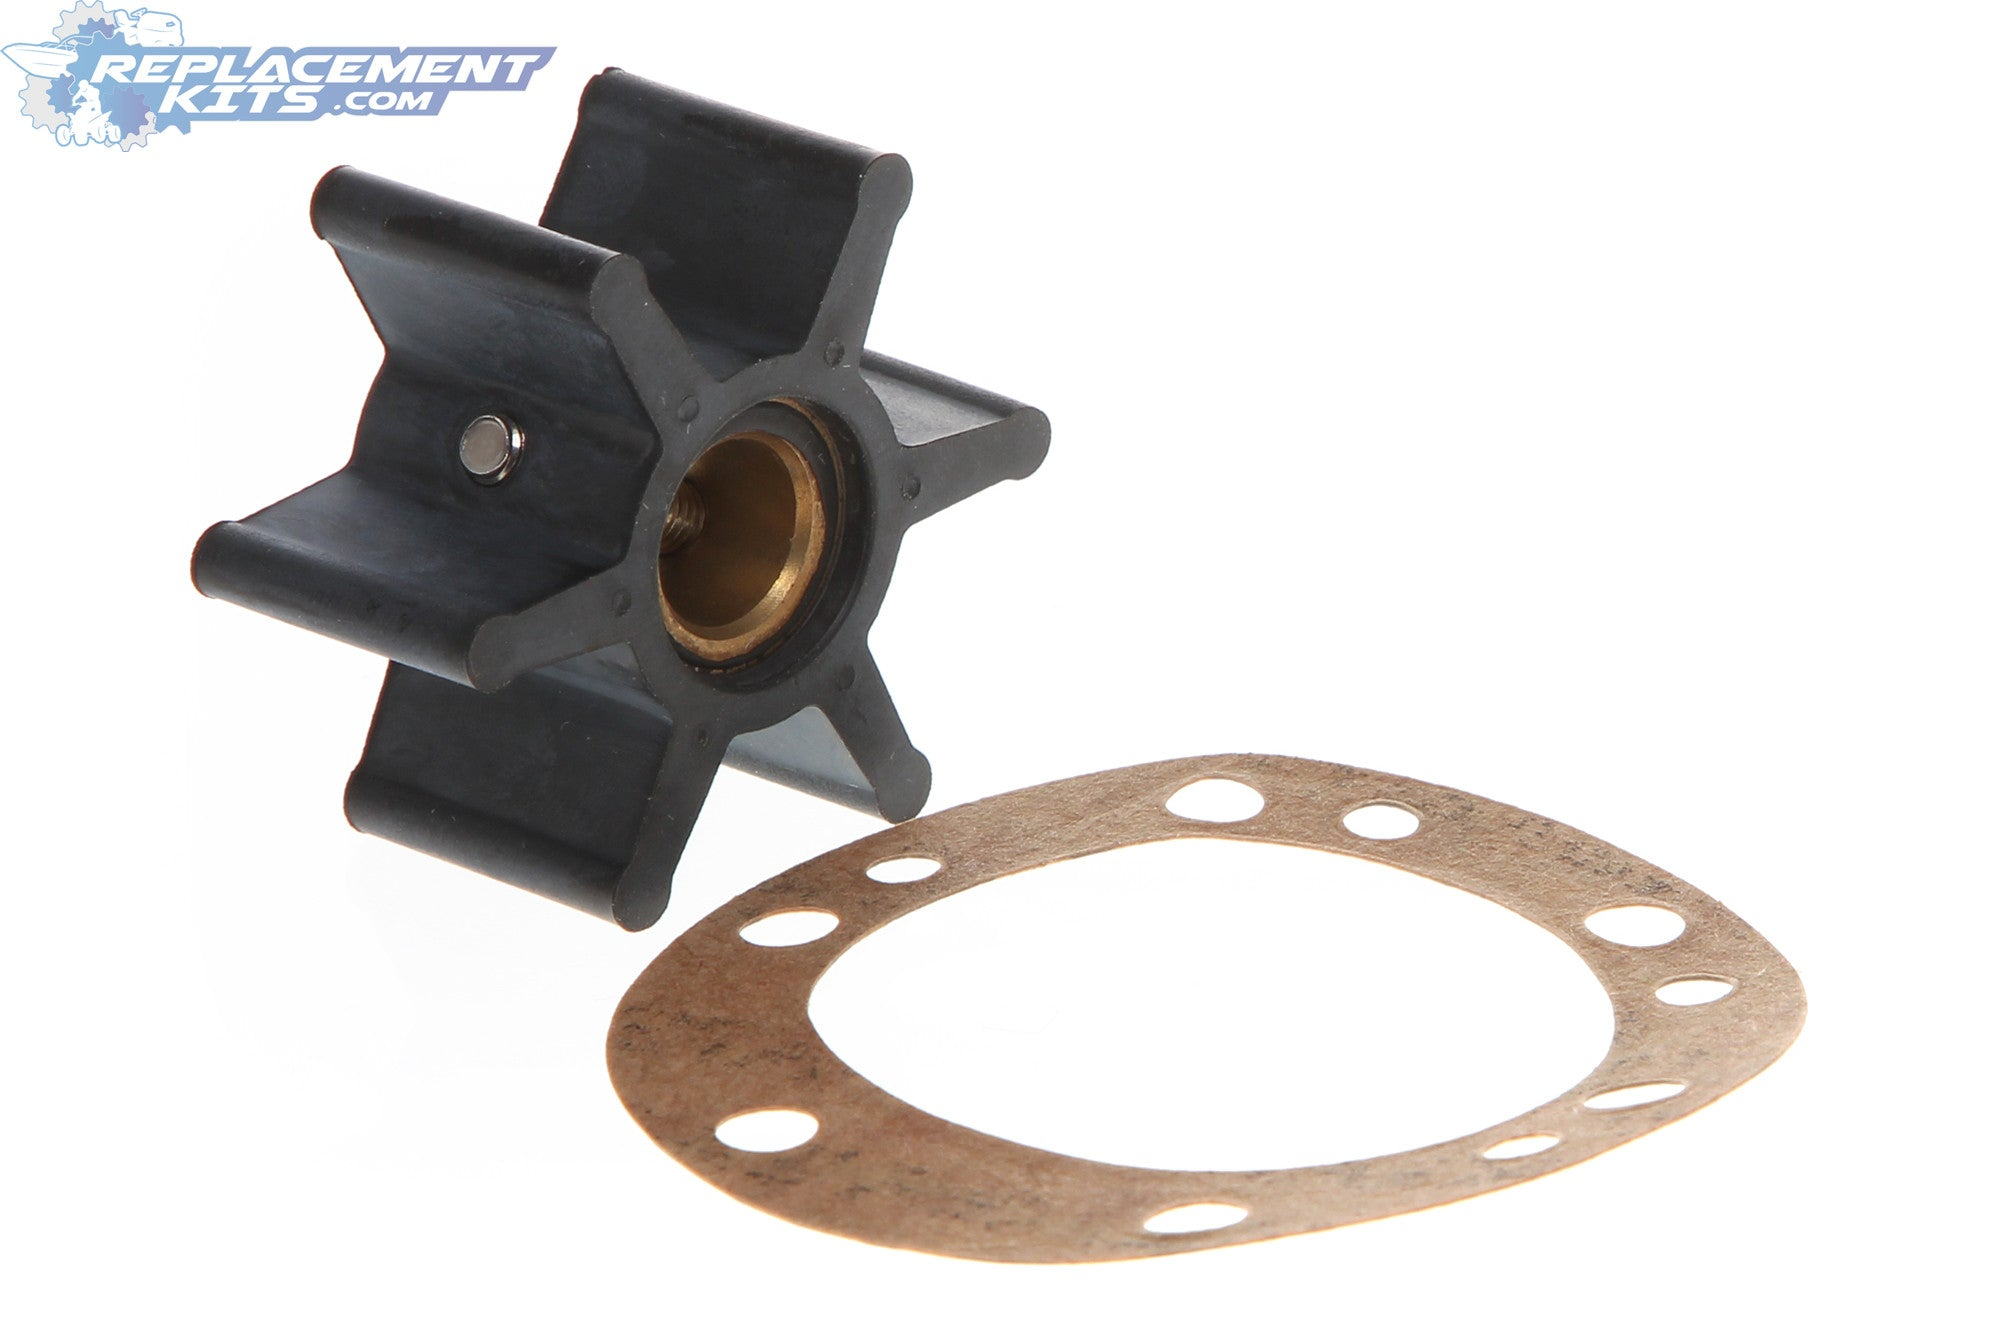 Impeller Kit for Yanmar Marine Diesel Replaces 104211-42071, 104211-42070,  104211-42090